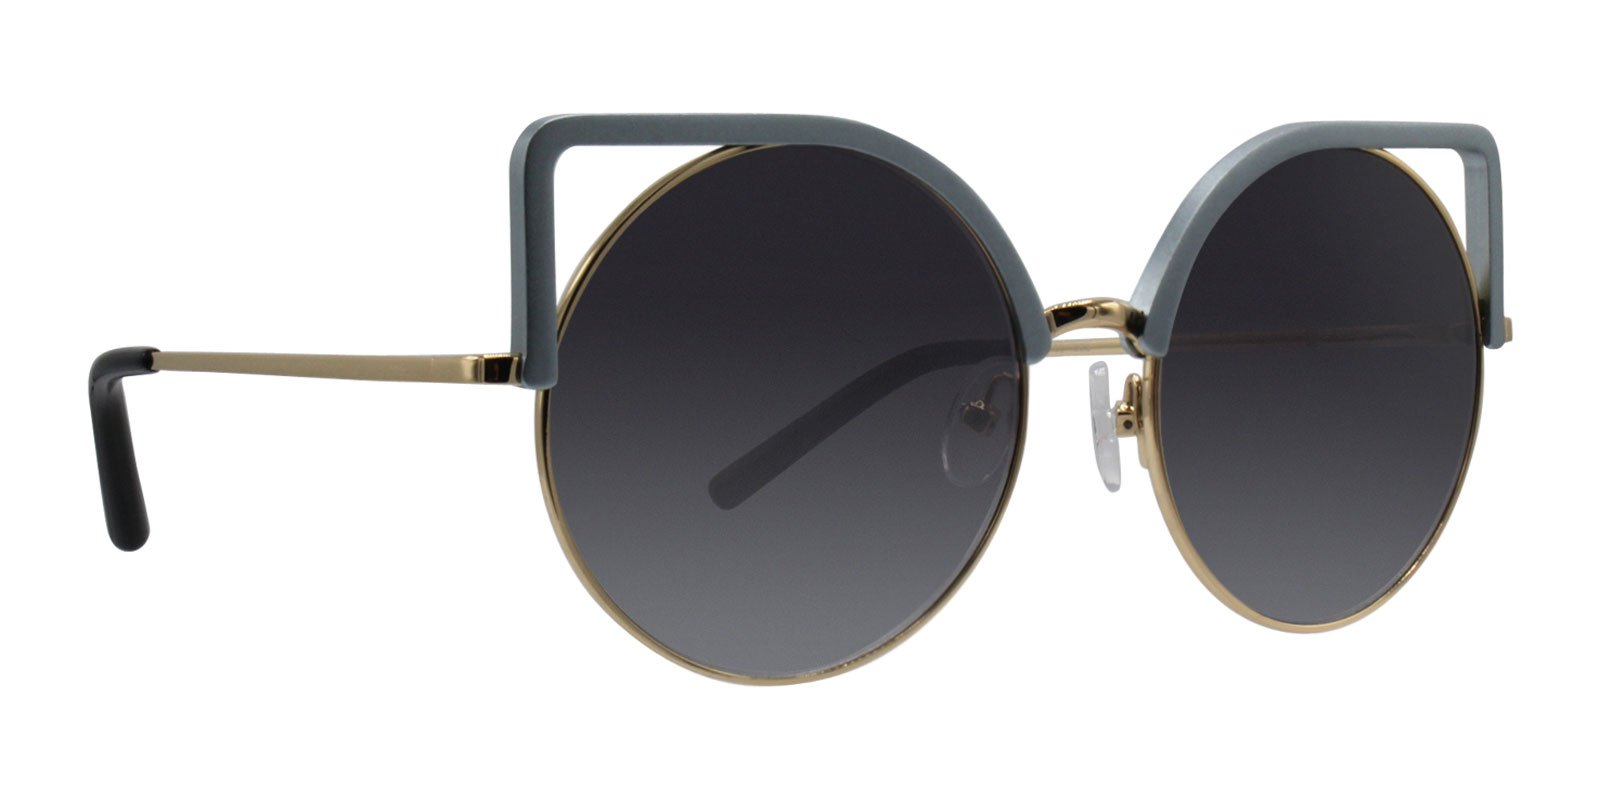 Matthew Williamson - MW169 Blue Oval Women Sunglasses - 54mm-Sunglasses-Designer Eyes